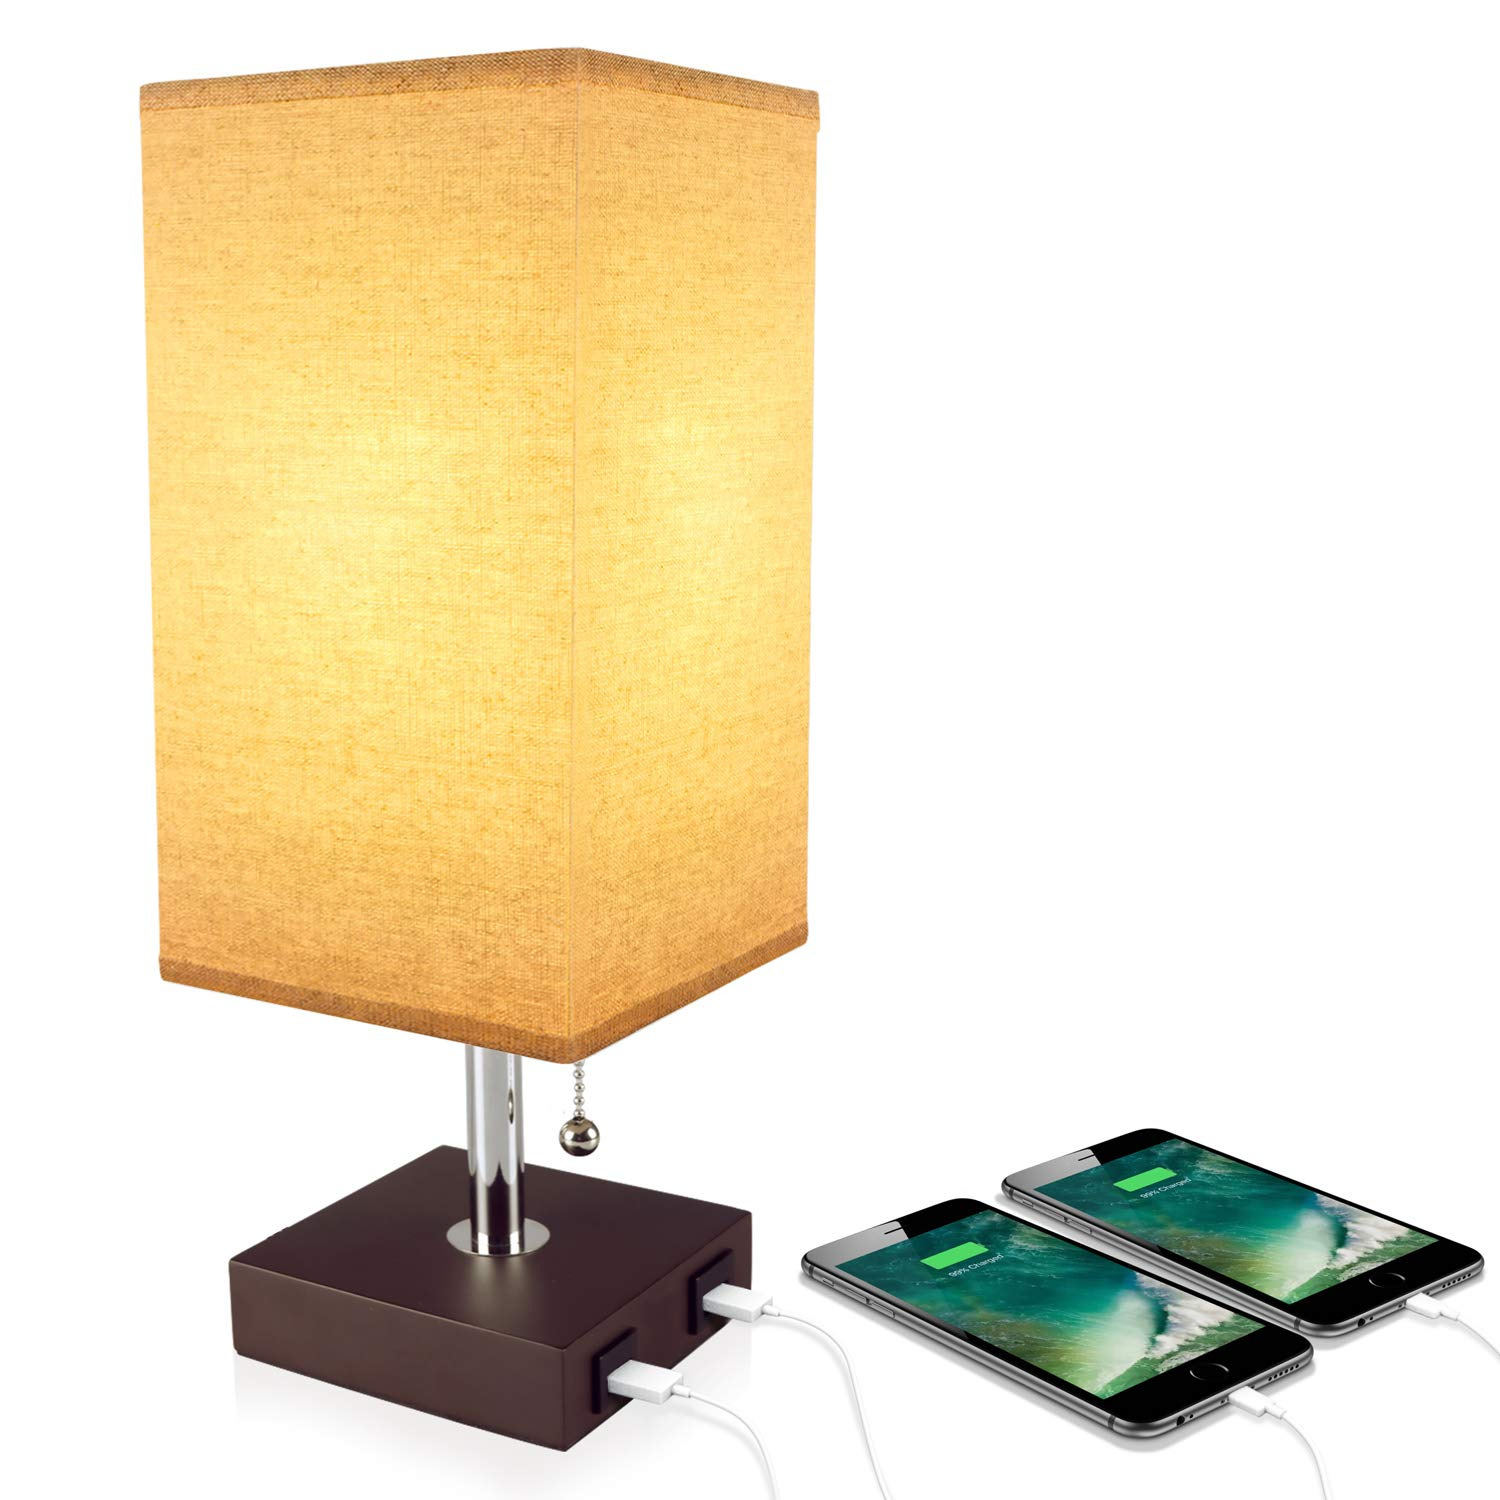 Usb Table Desk Lamp Acaxin Bedside Lamp With Dual Usb